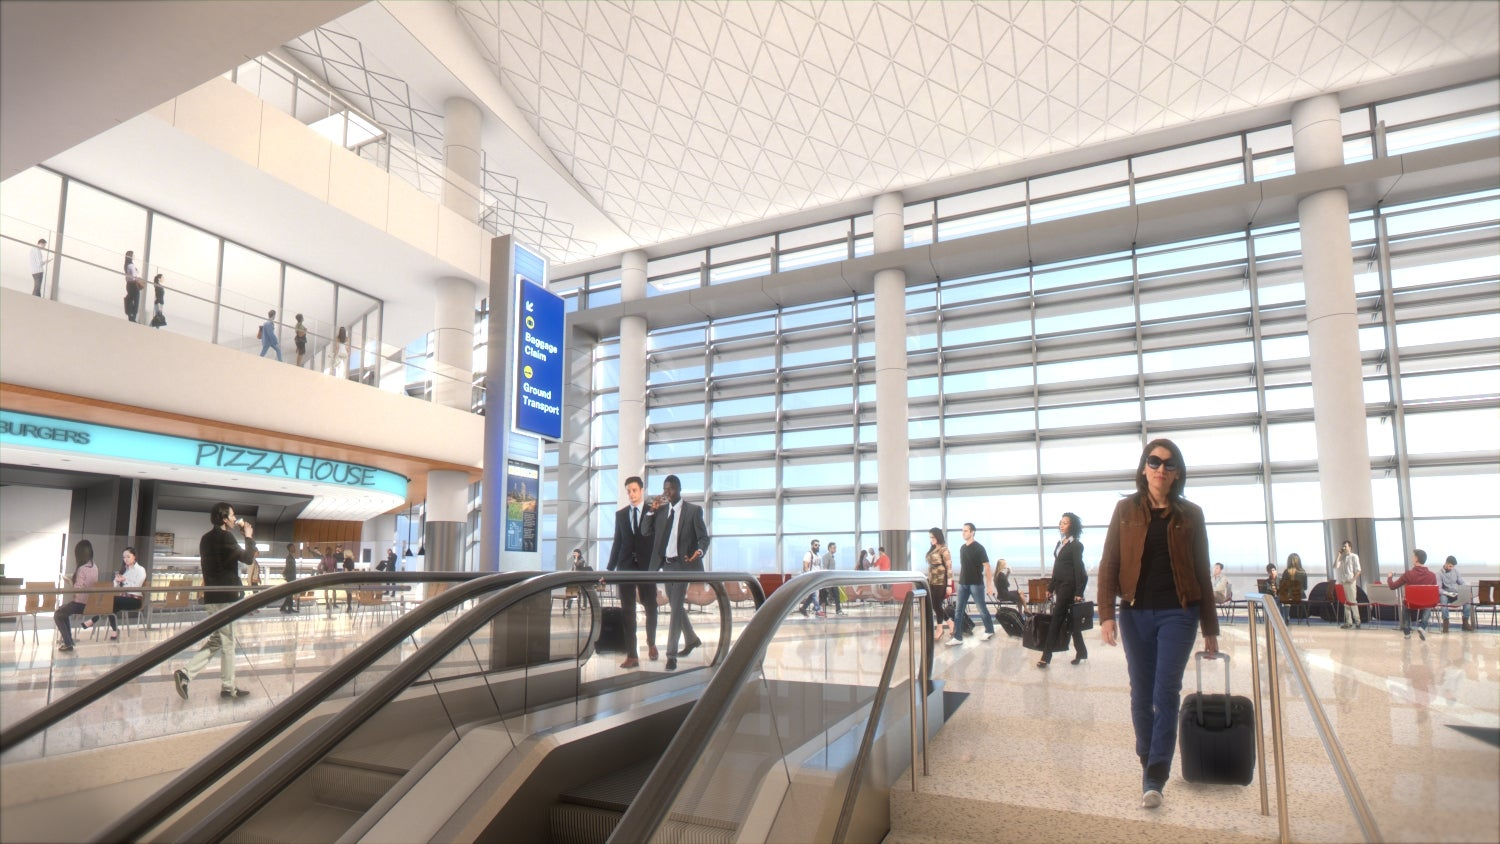 What the new Midfield Satellite Concourse at LAX will look like